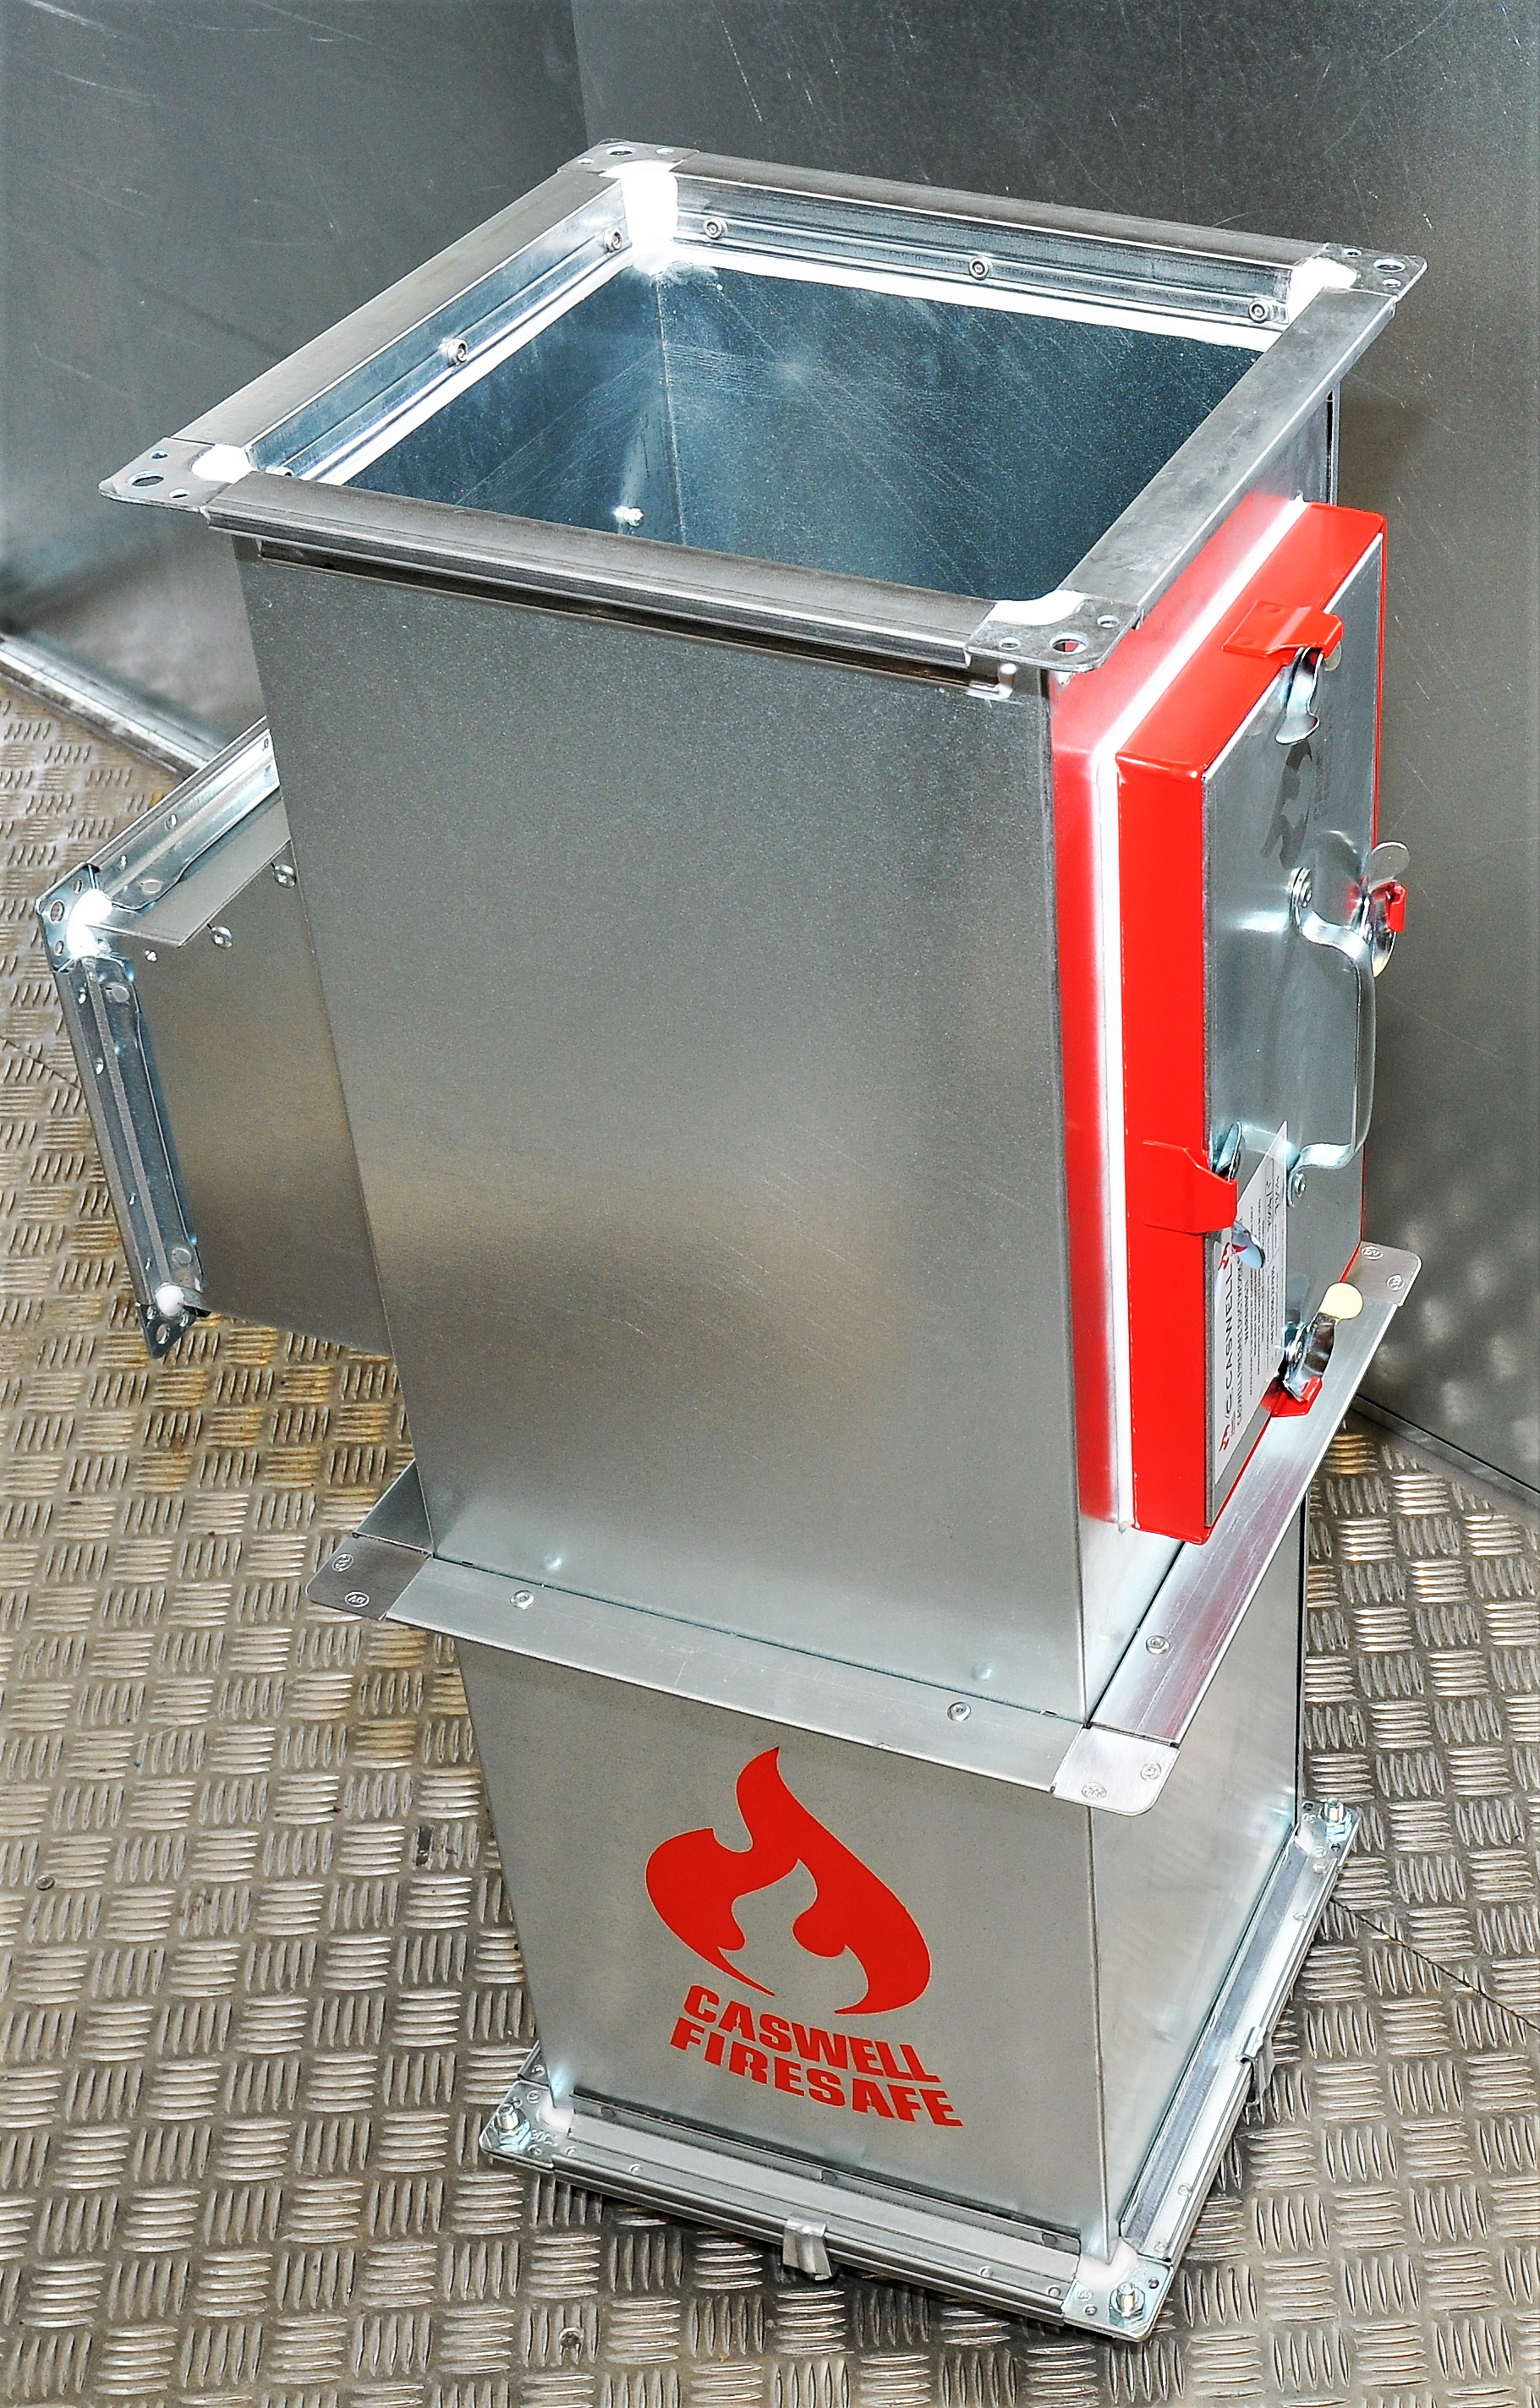 CASWELL FIRESAFE fire resisting ductwork